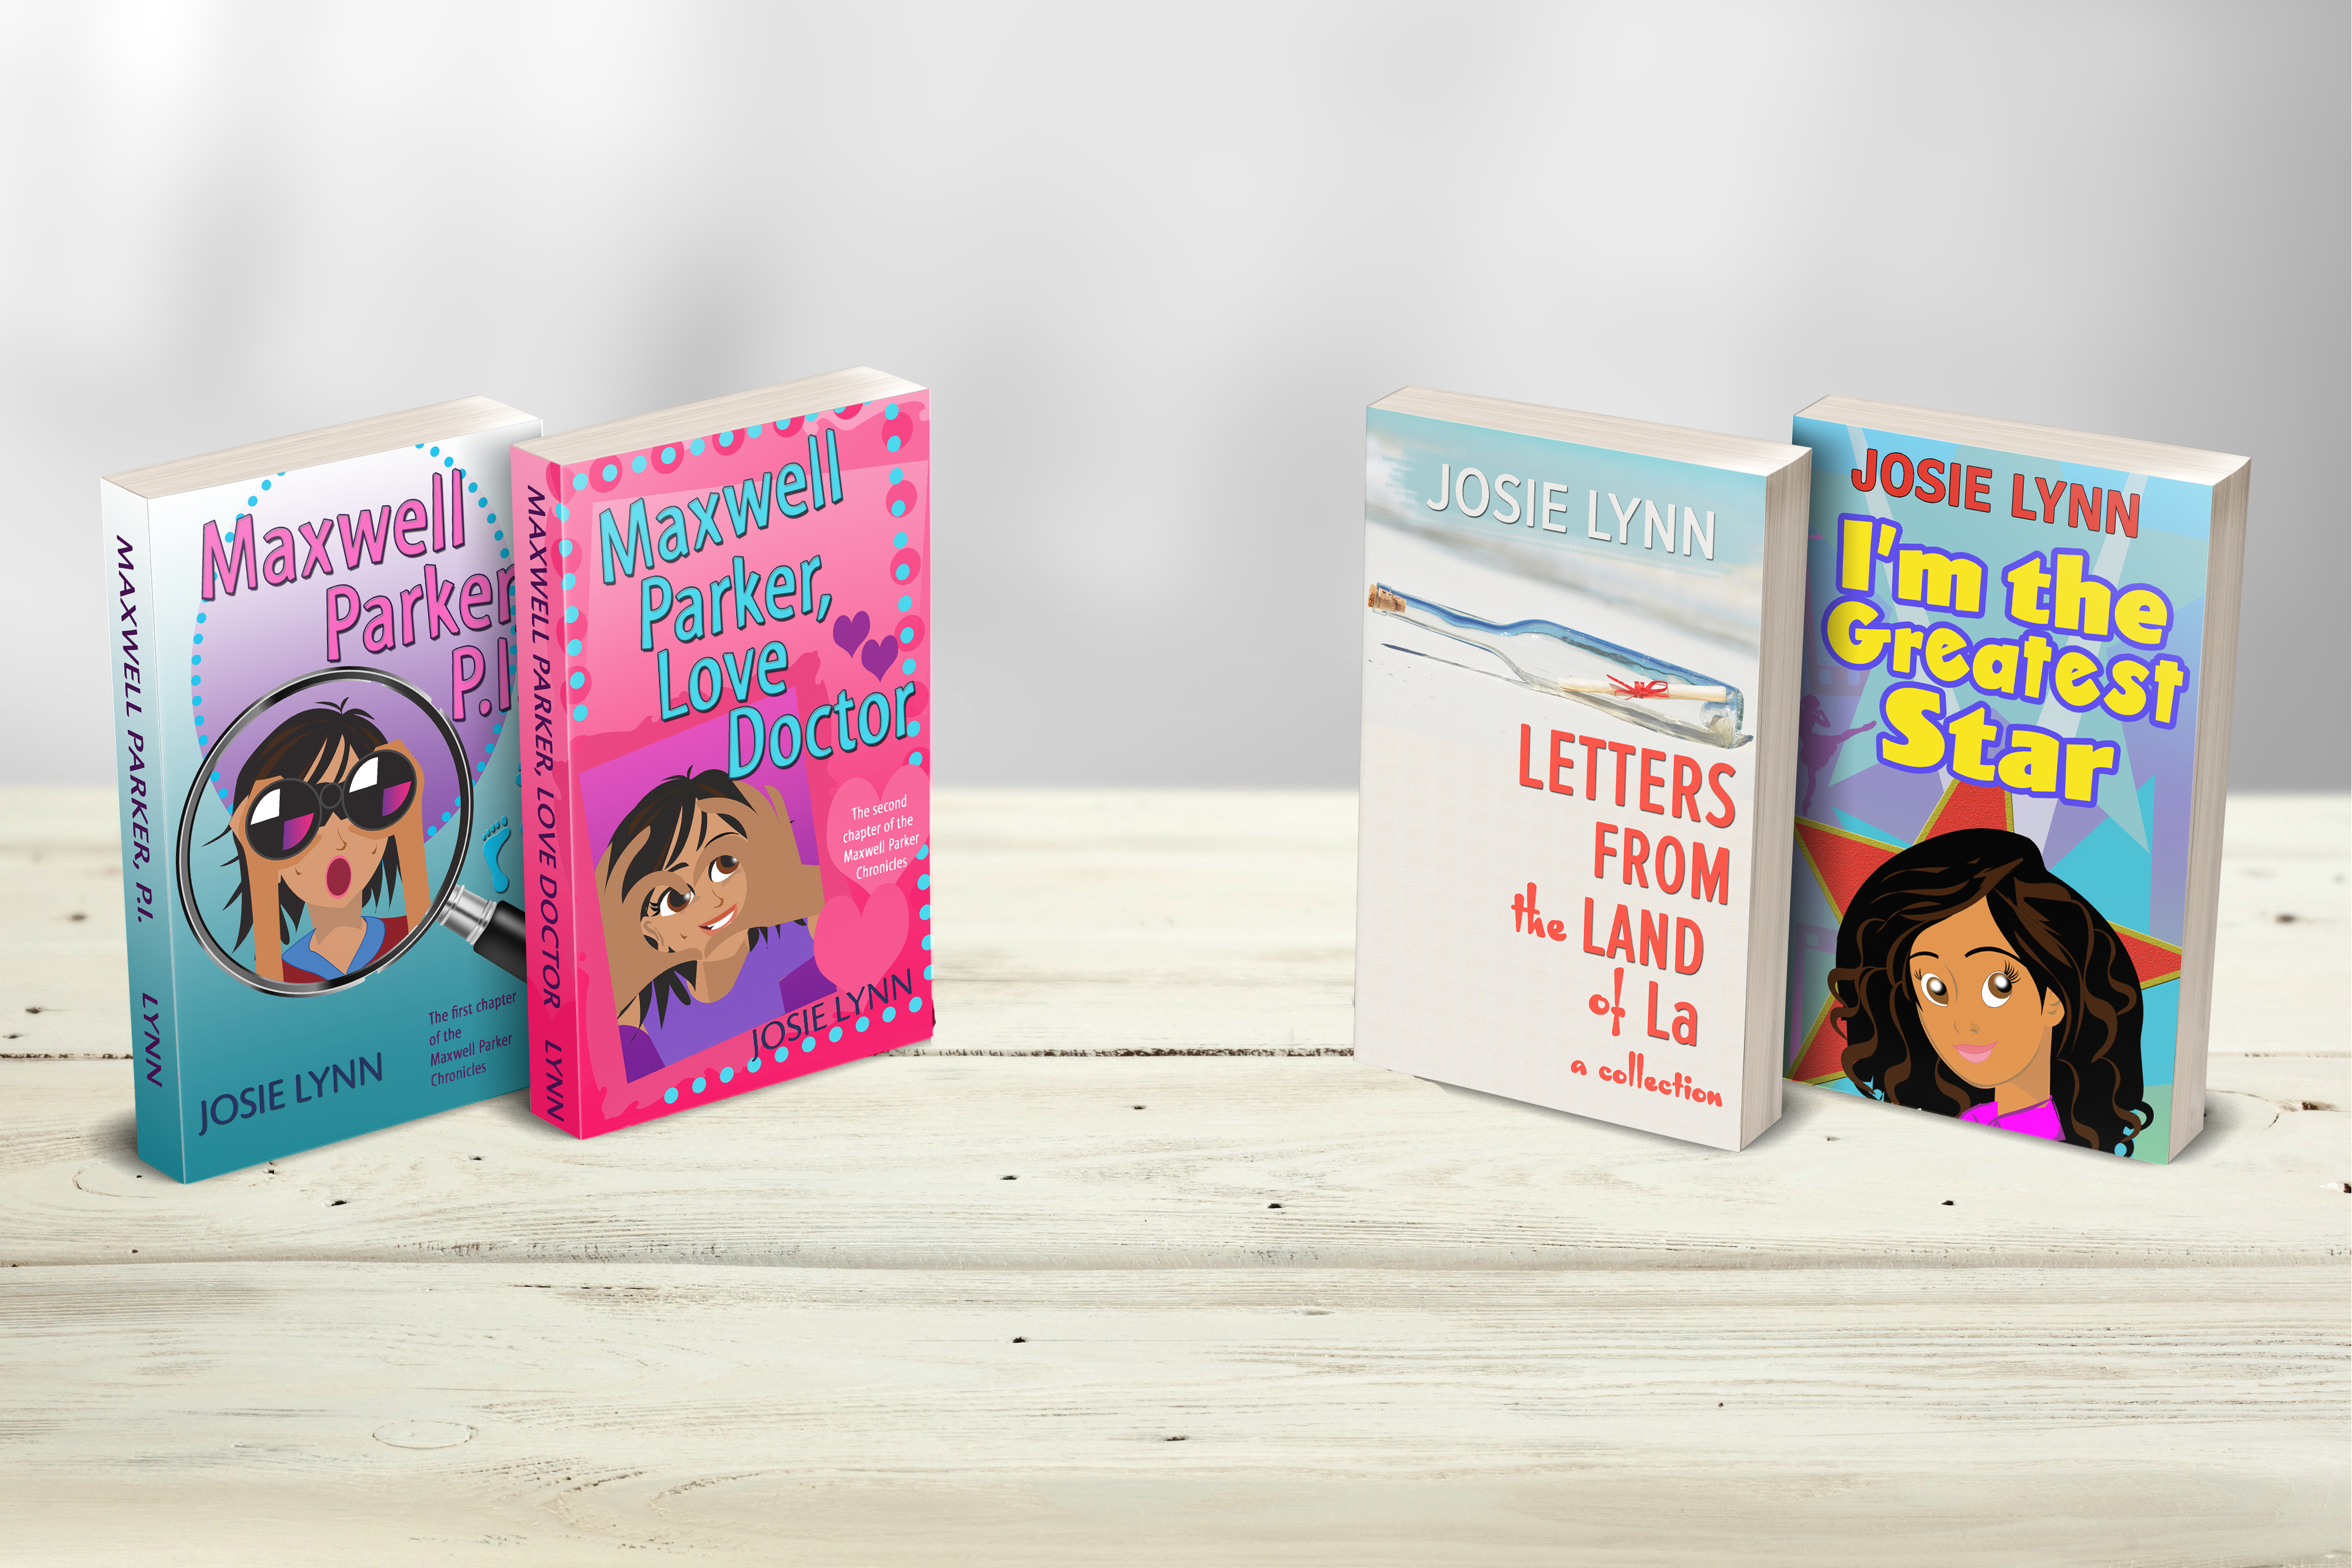 Book covers for website